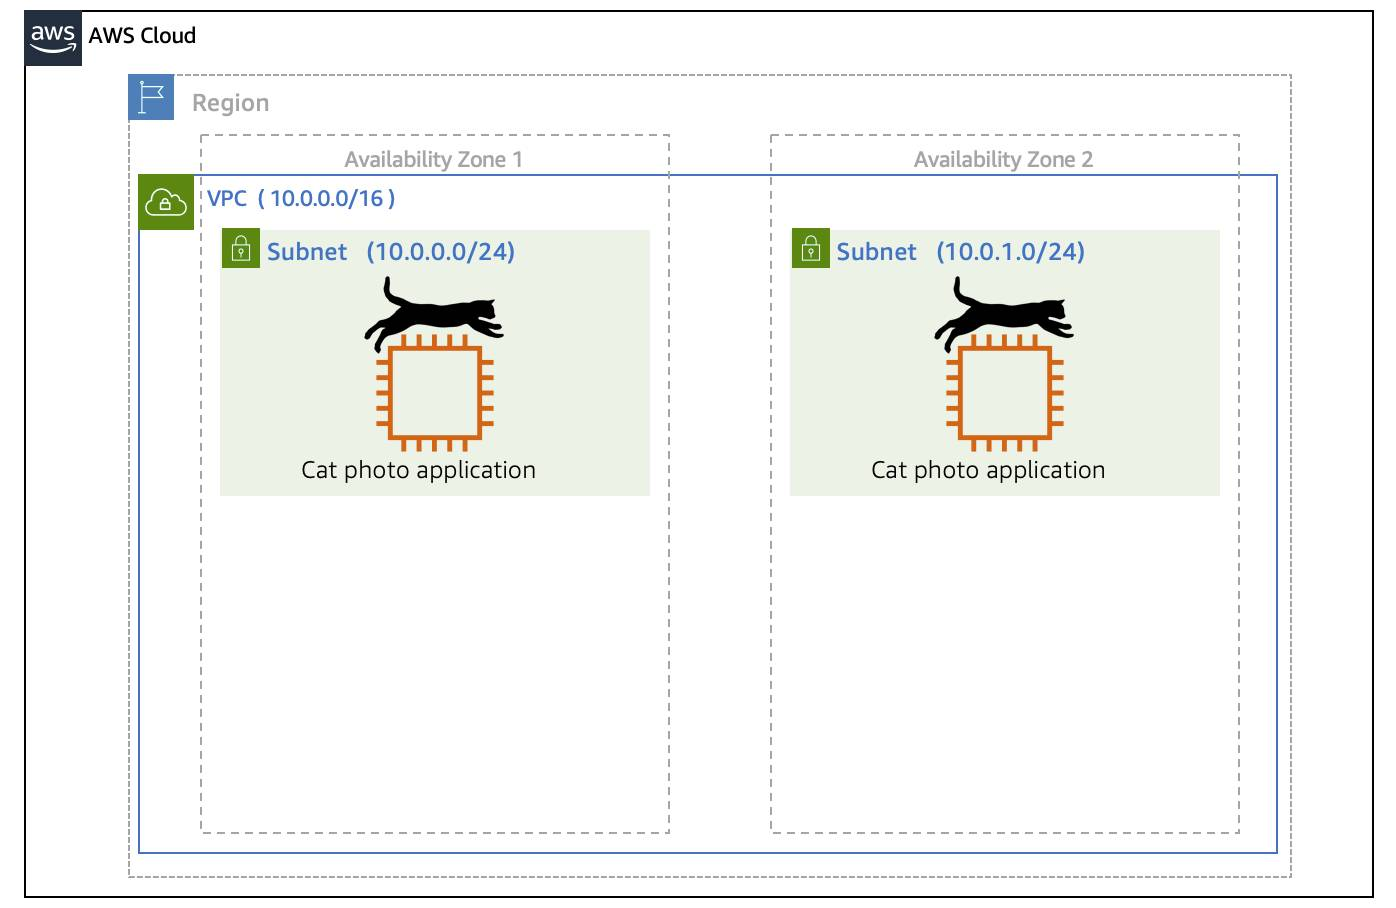 Two cat photo applications with Amazon EC2 instances in two separate Availability Zones in a VPC in a region